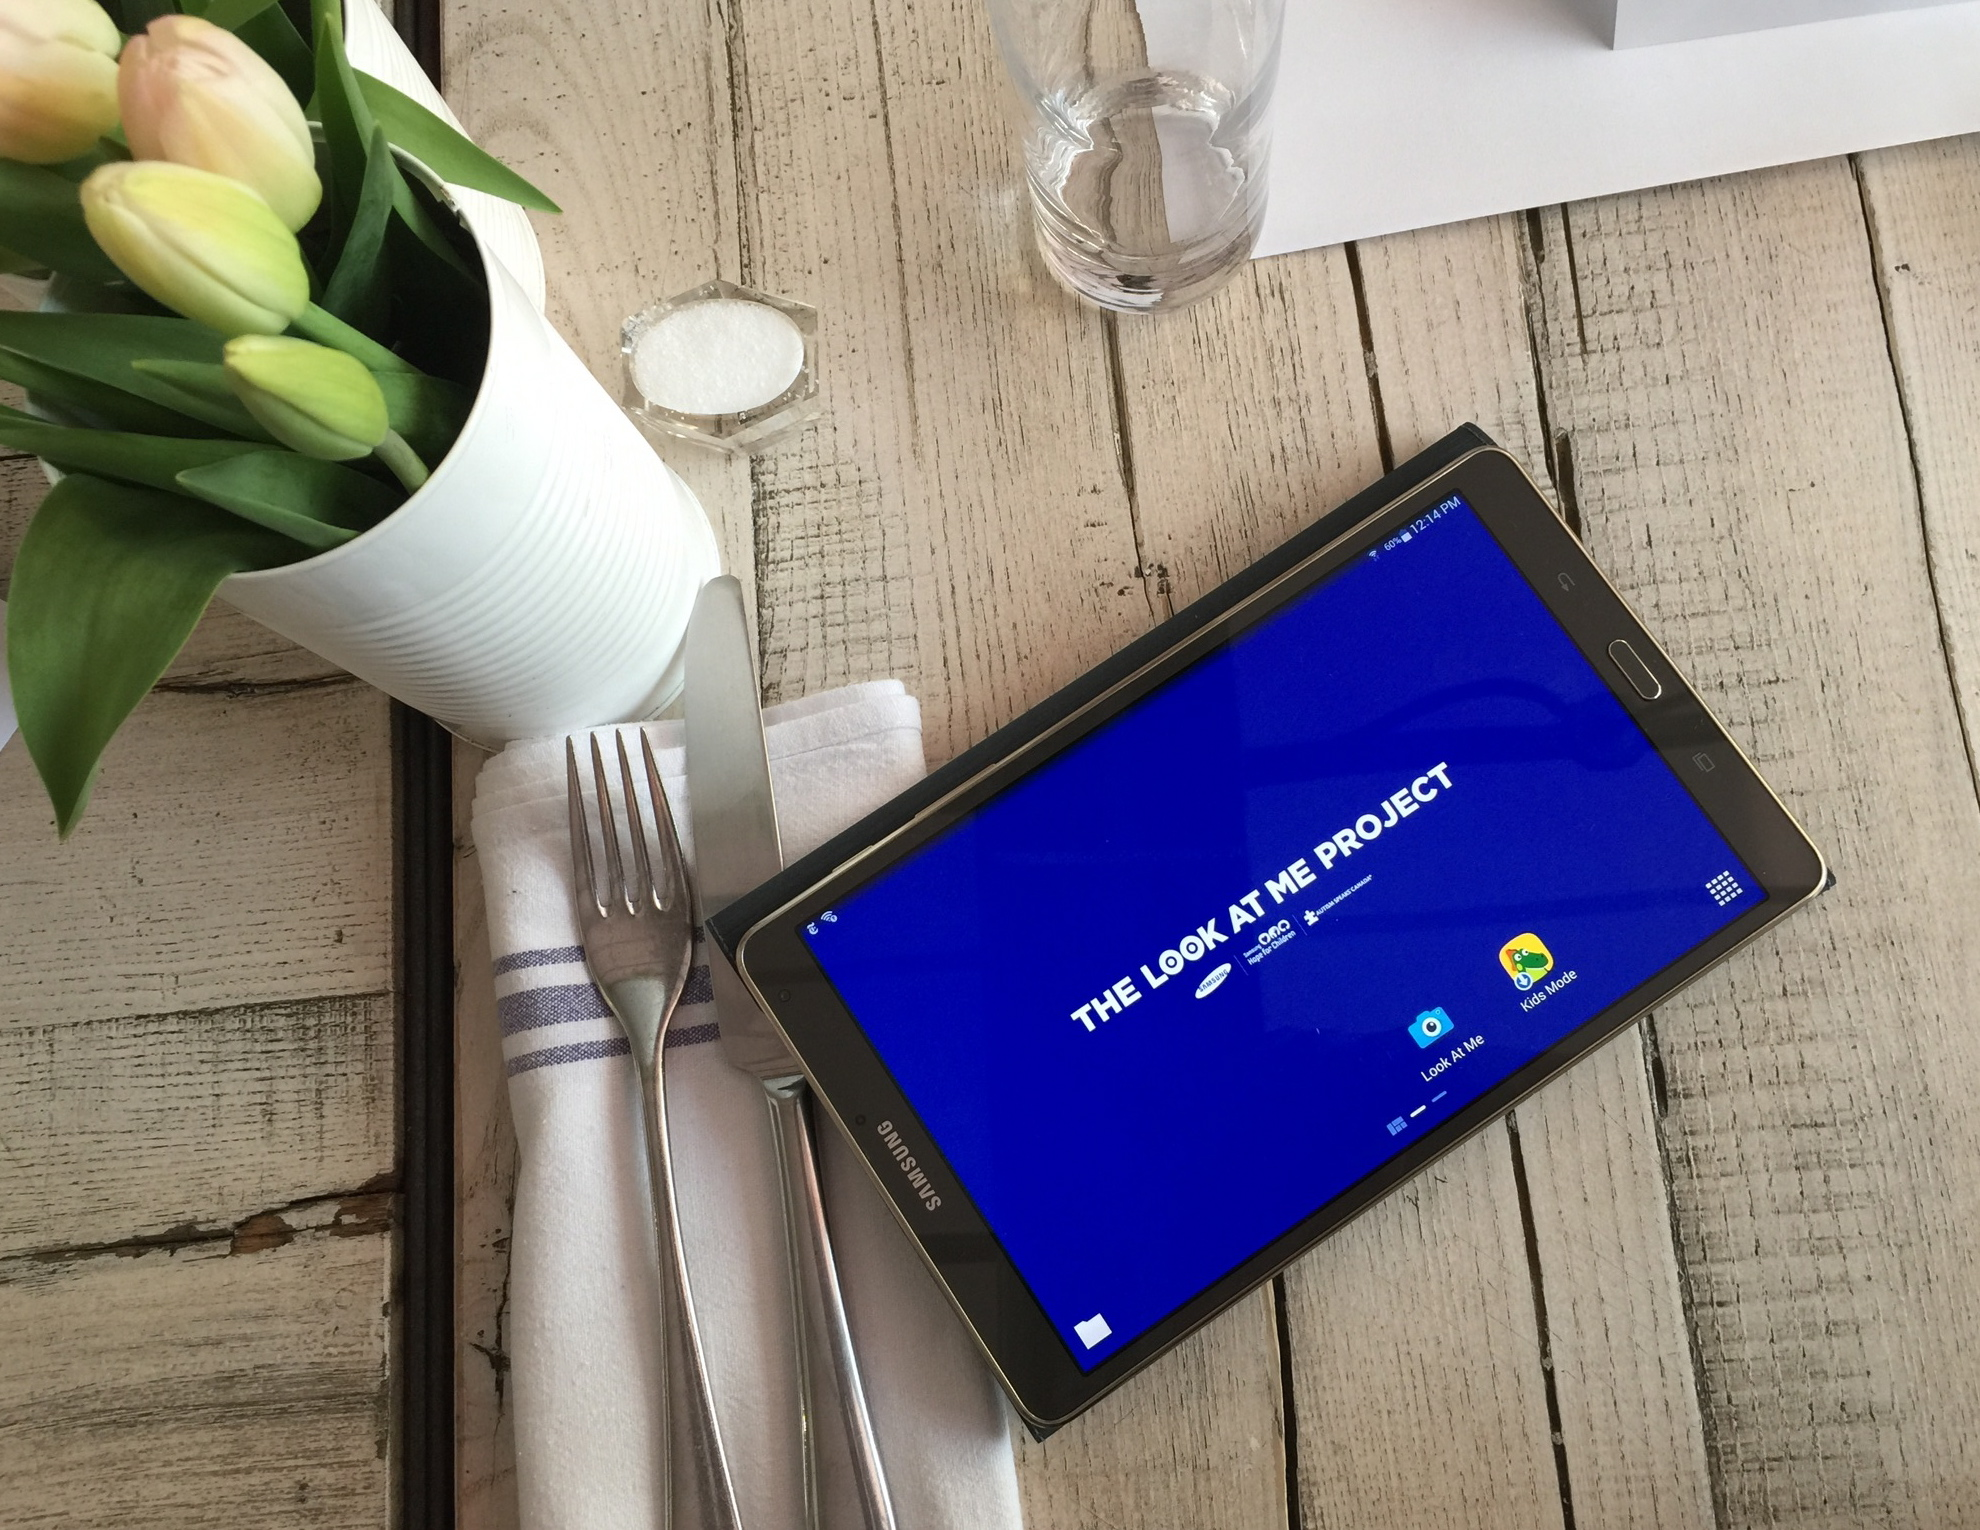 We're Celebrating The 'Look At Me' App And Giving Away A Samsung Galaxy Tablet